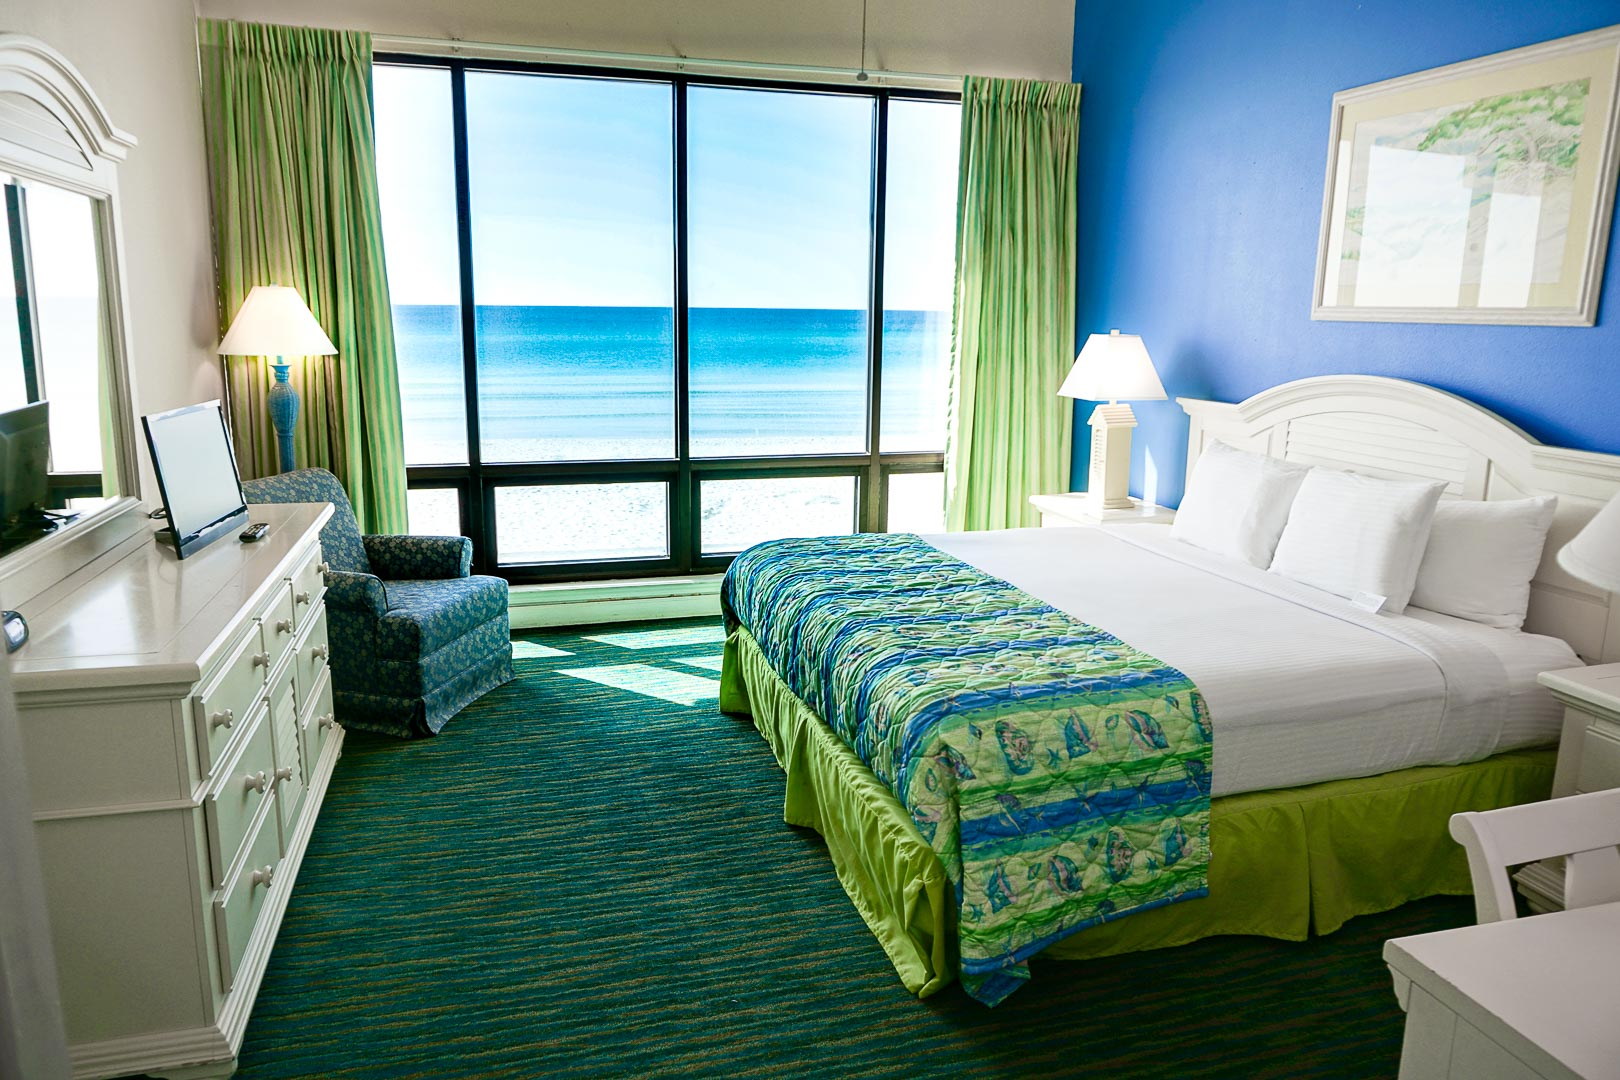 A beautiful master bedroom with a view to the beach at VRI's Landmark Holiday Beach Resort in Panama City, Florida.